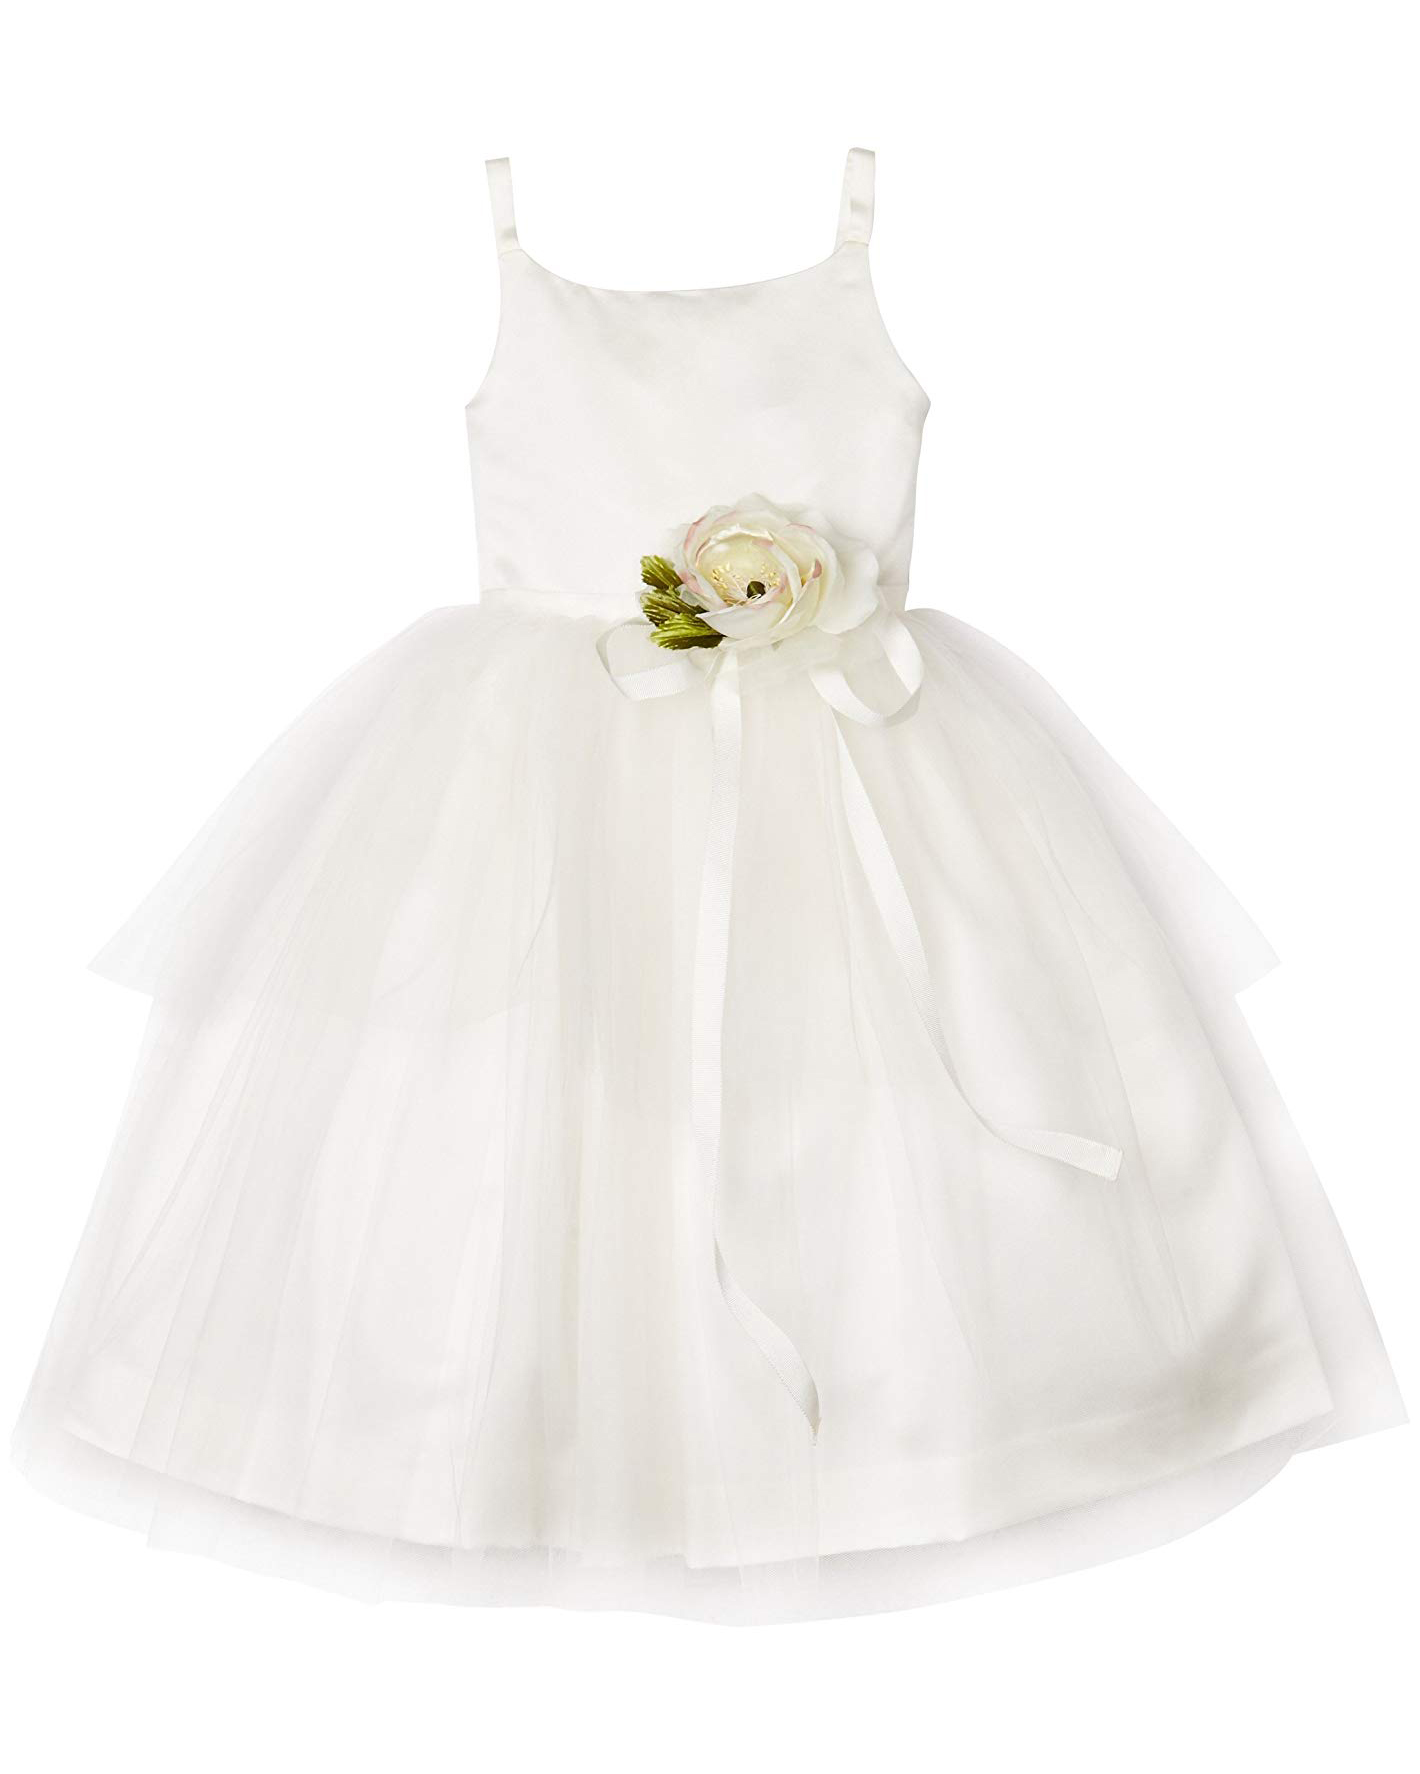 white ballerina dress with tulle skirt and floral ribbon waist